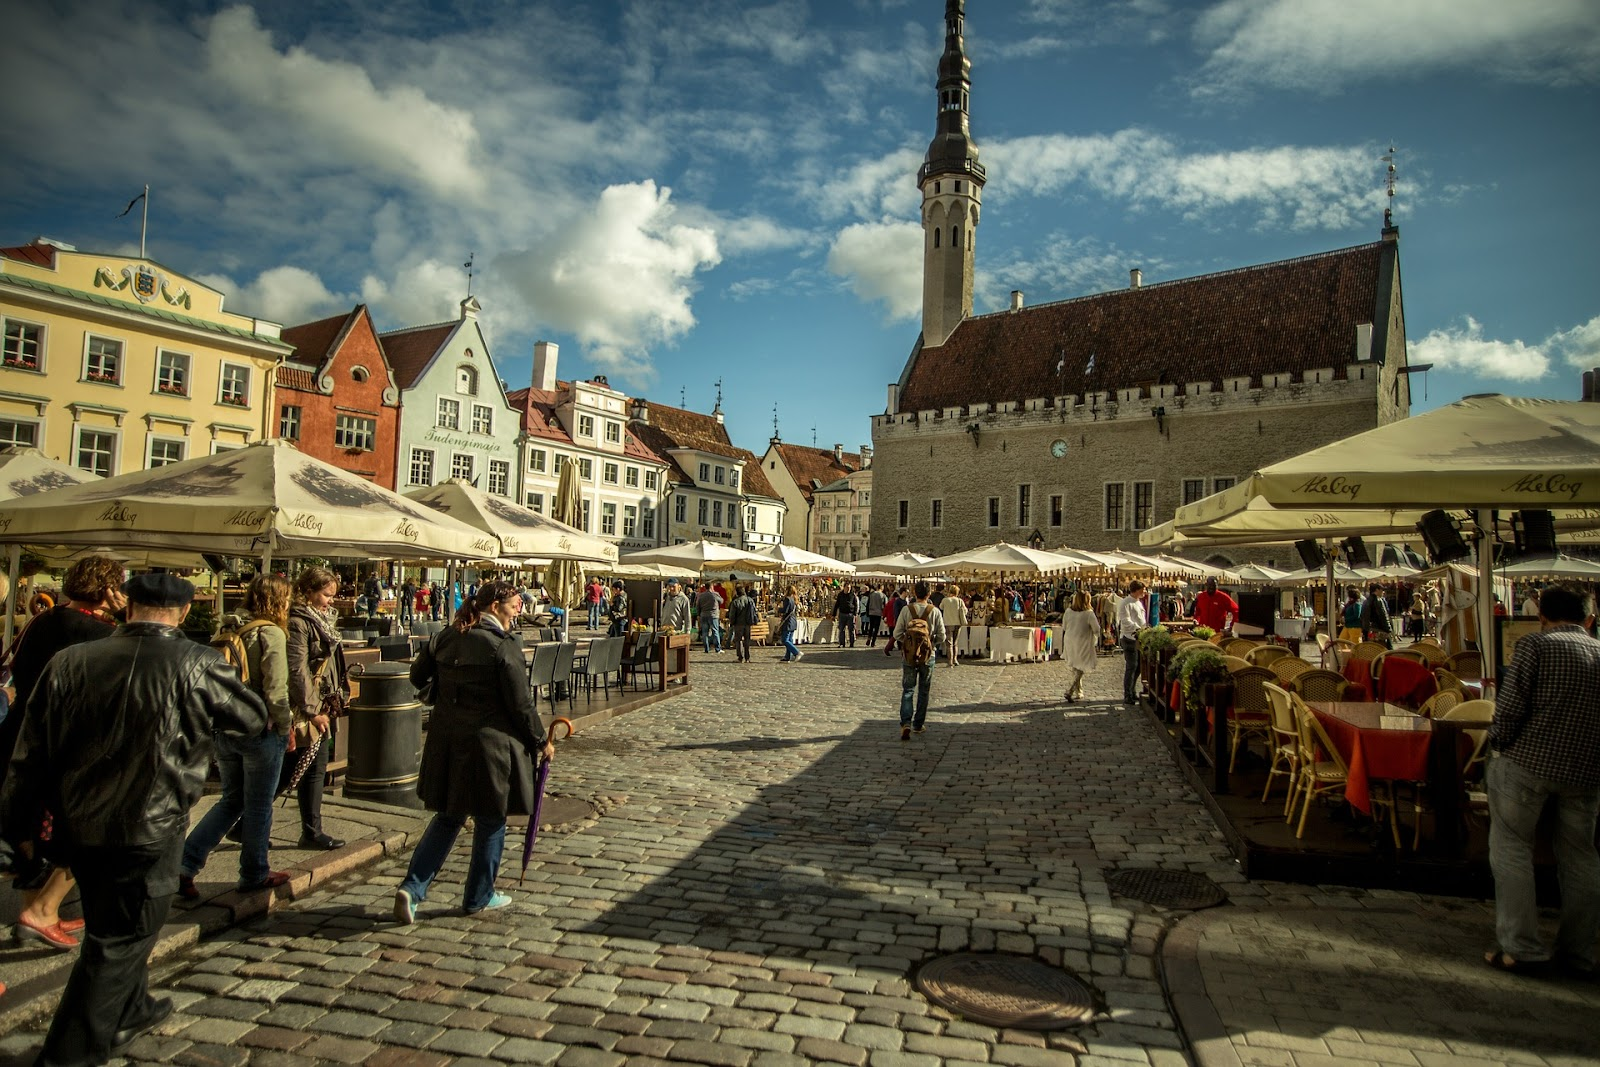 Tallinn old town, vibrant square full of outdoor restaurants and tourists wandering around. Large medieval cathedral in the background and traditional architecture.